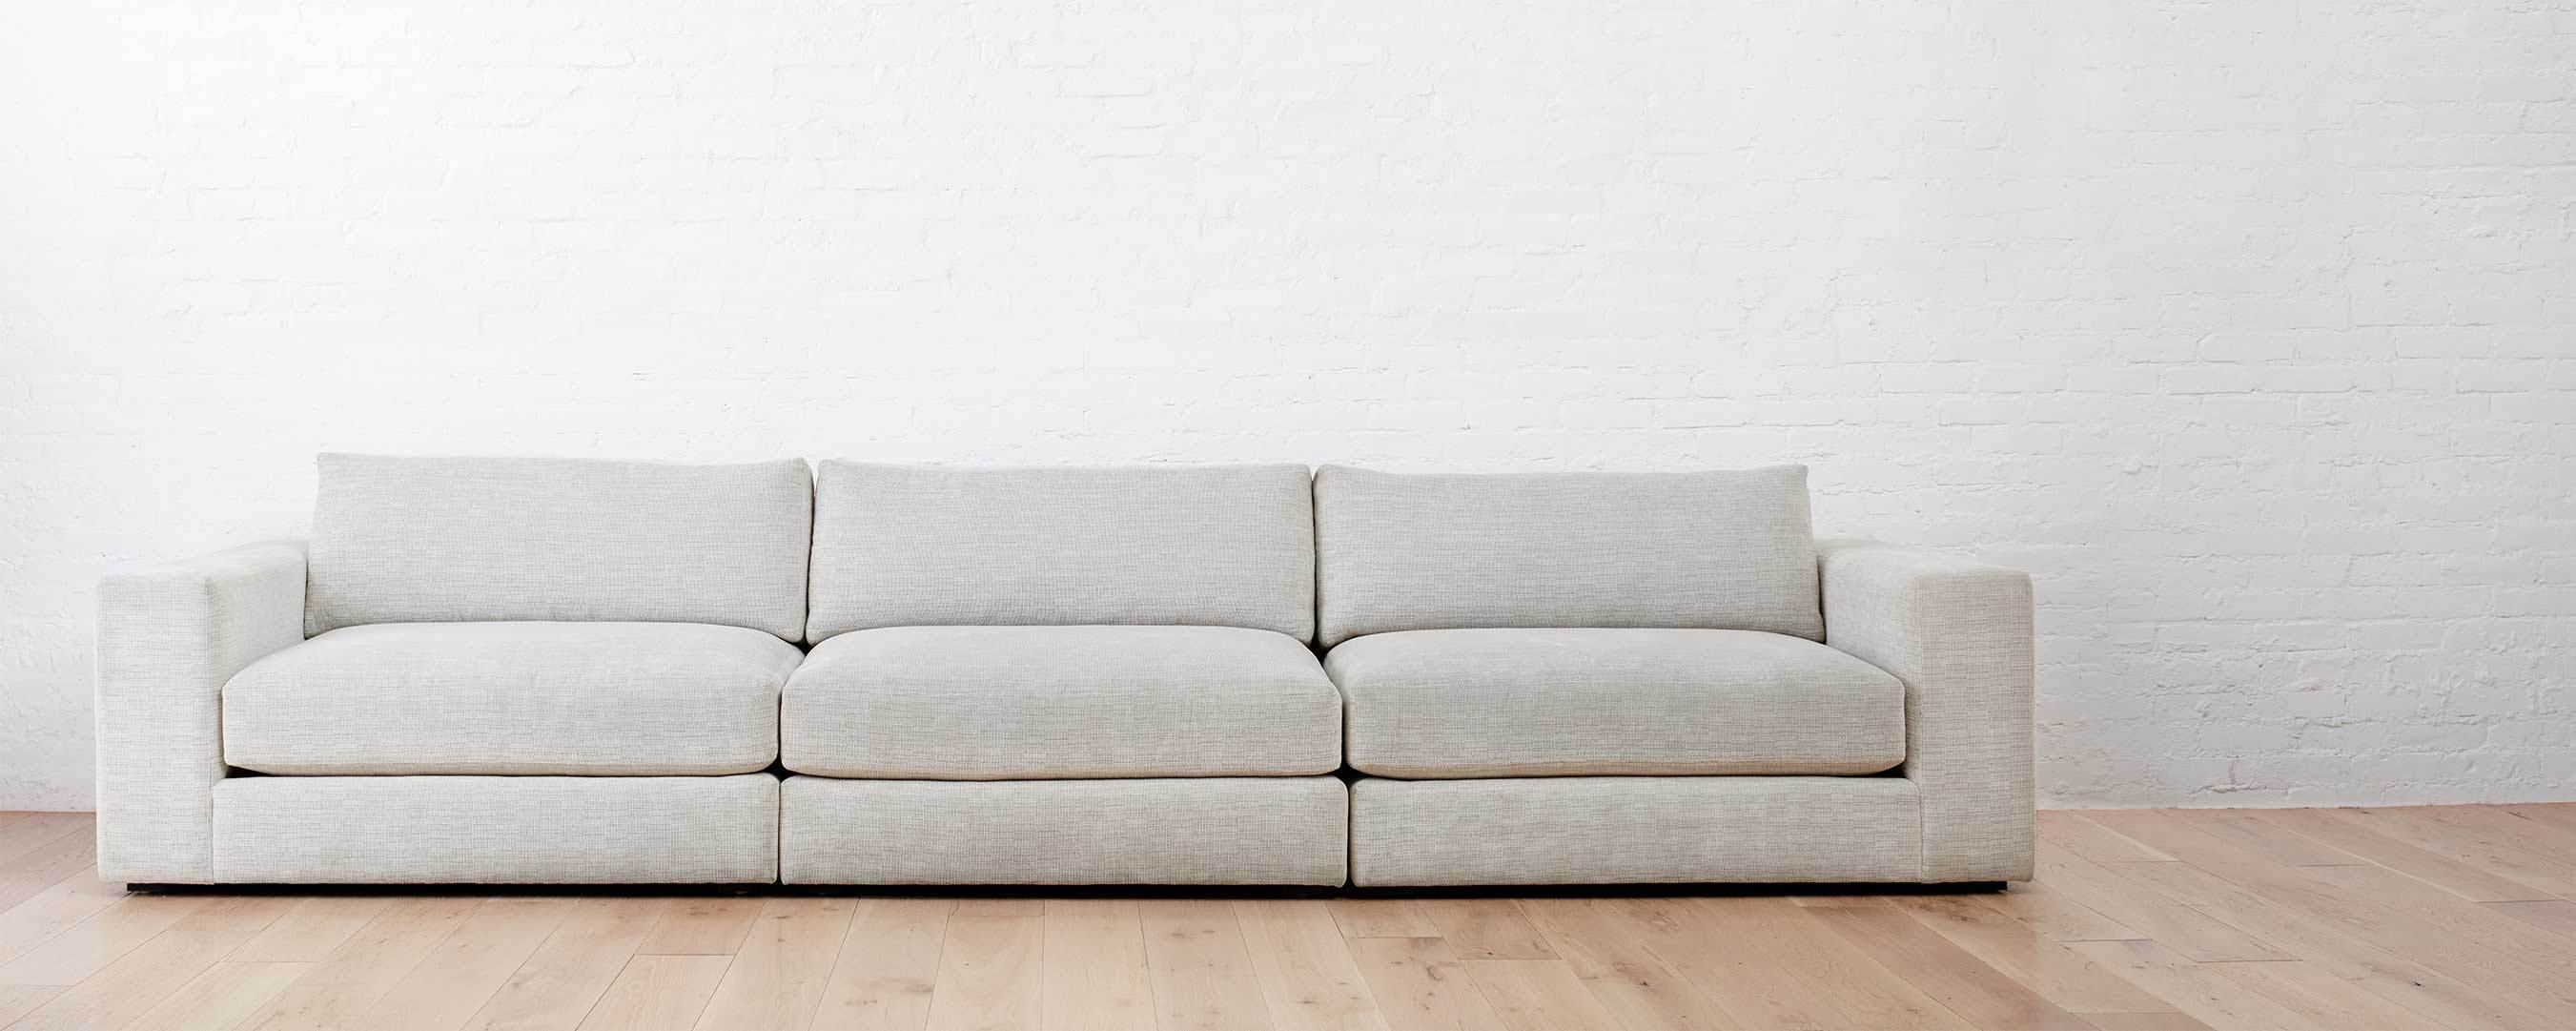 the lazy point sofa / sectional